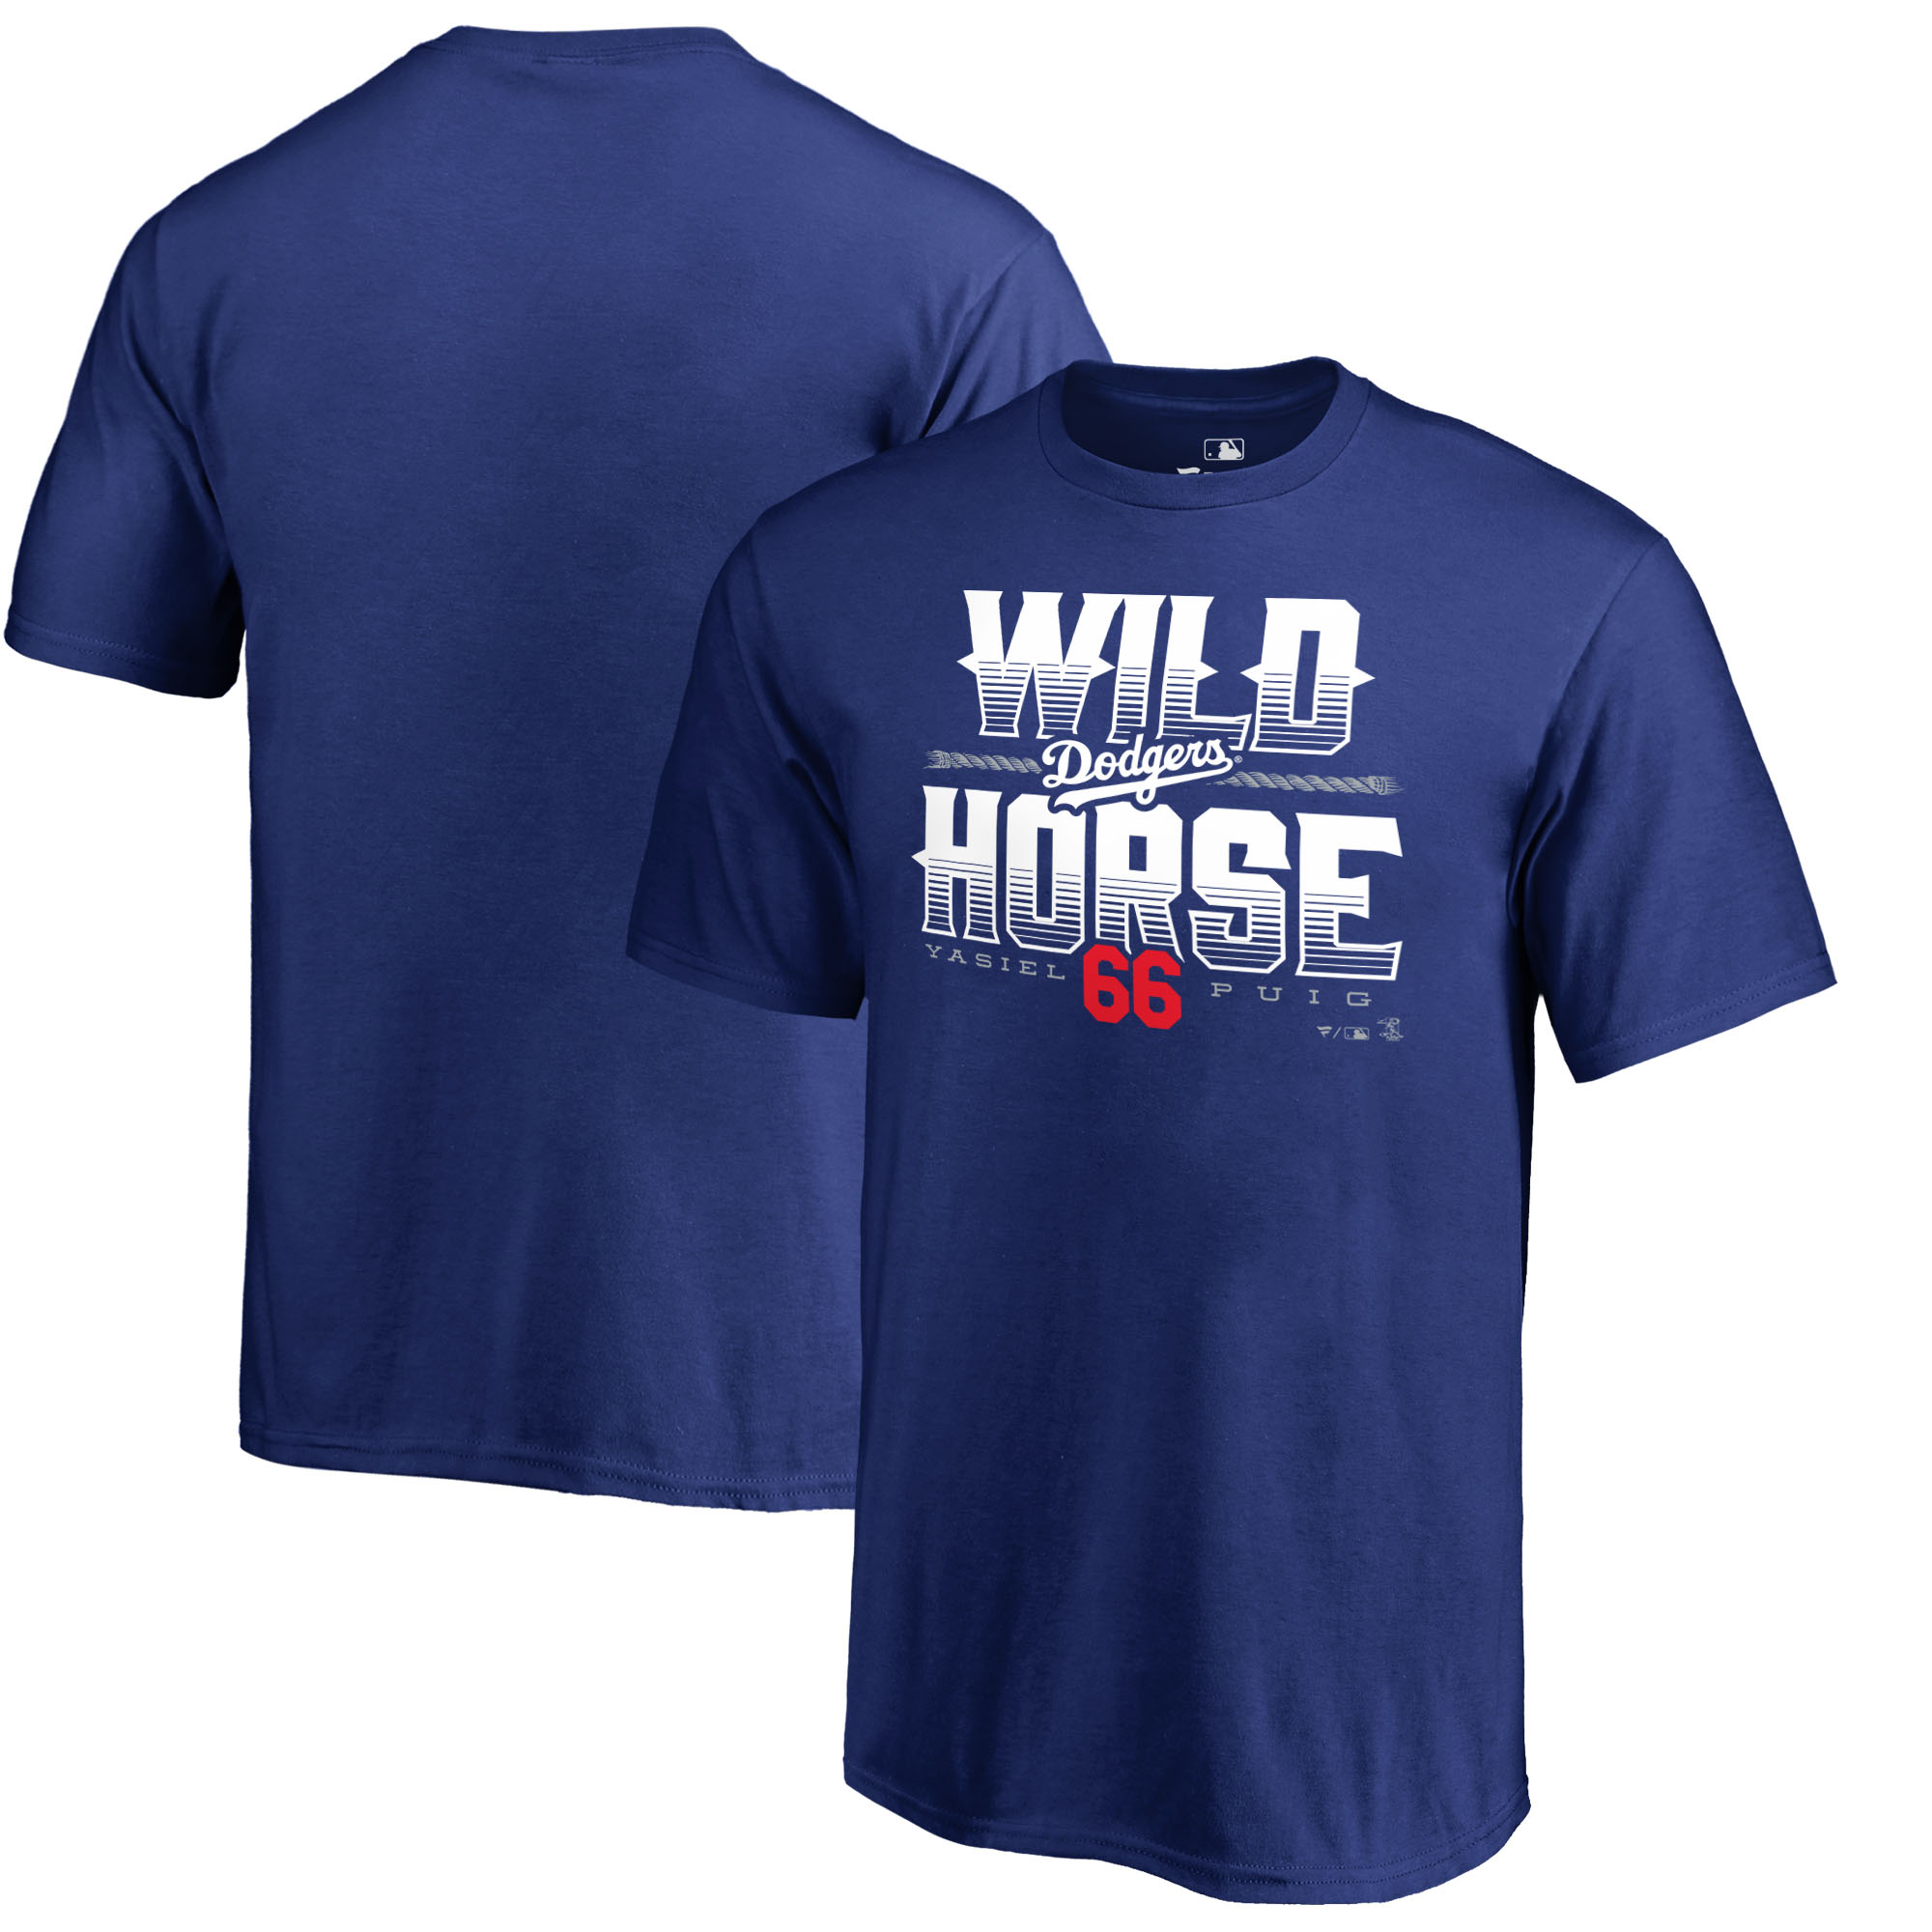 Yasiel Puig Los Angeles Dodgers Fanatics Branded Youth Hometown Collection Wild Horse T-Shirt - Royal